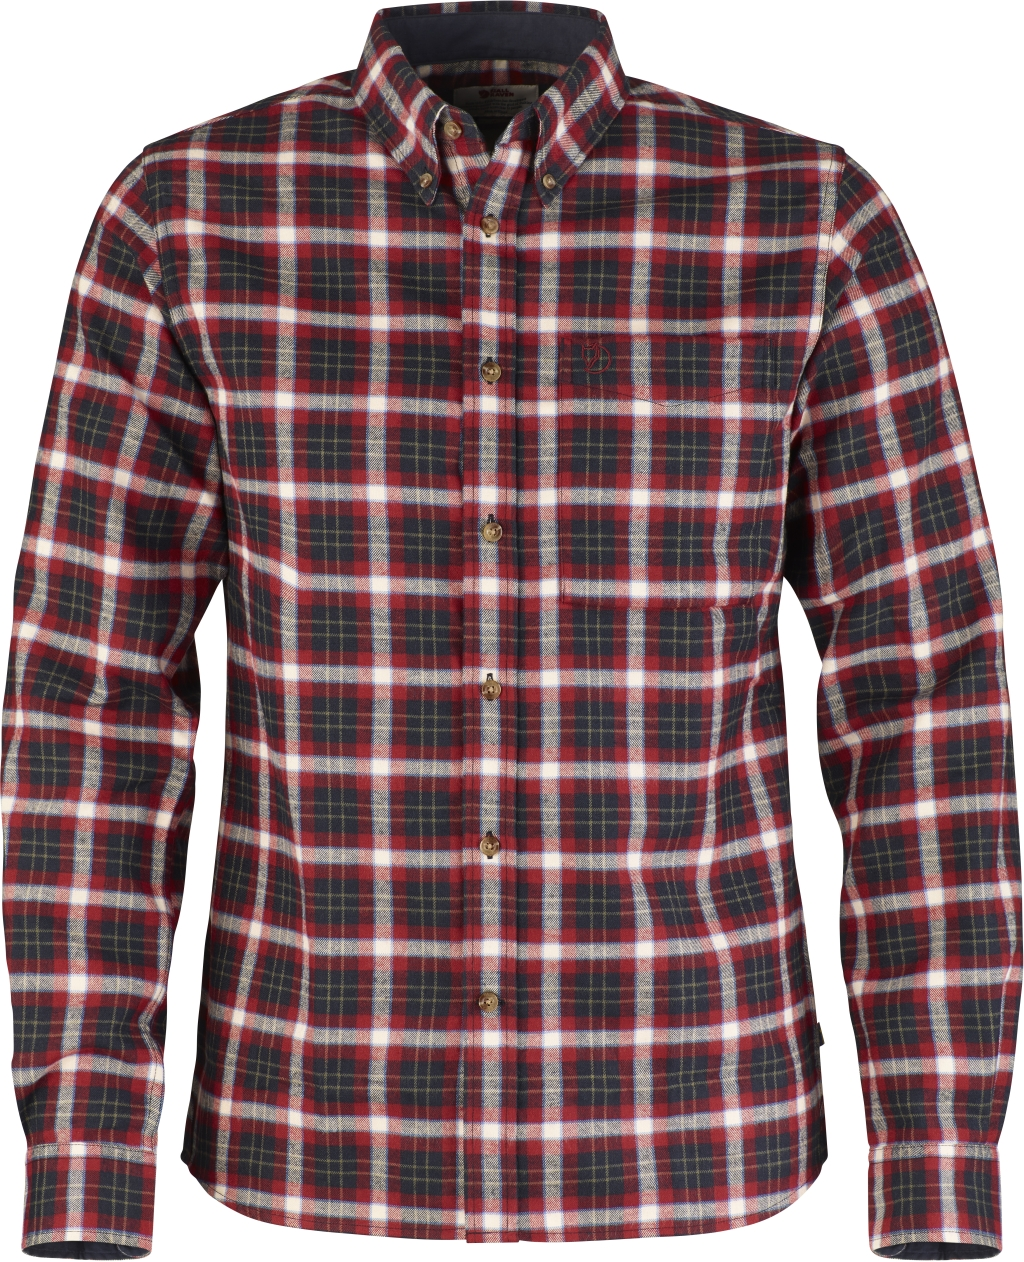 FjallRaven Stig Flannel Shirt Ox Red-30